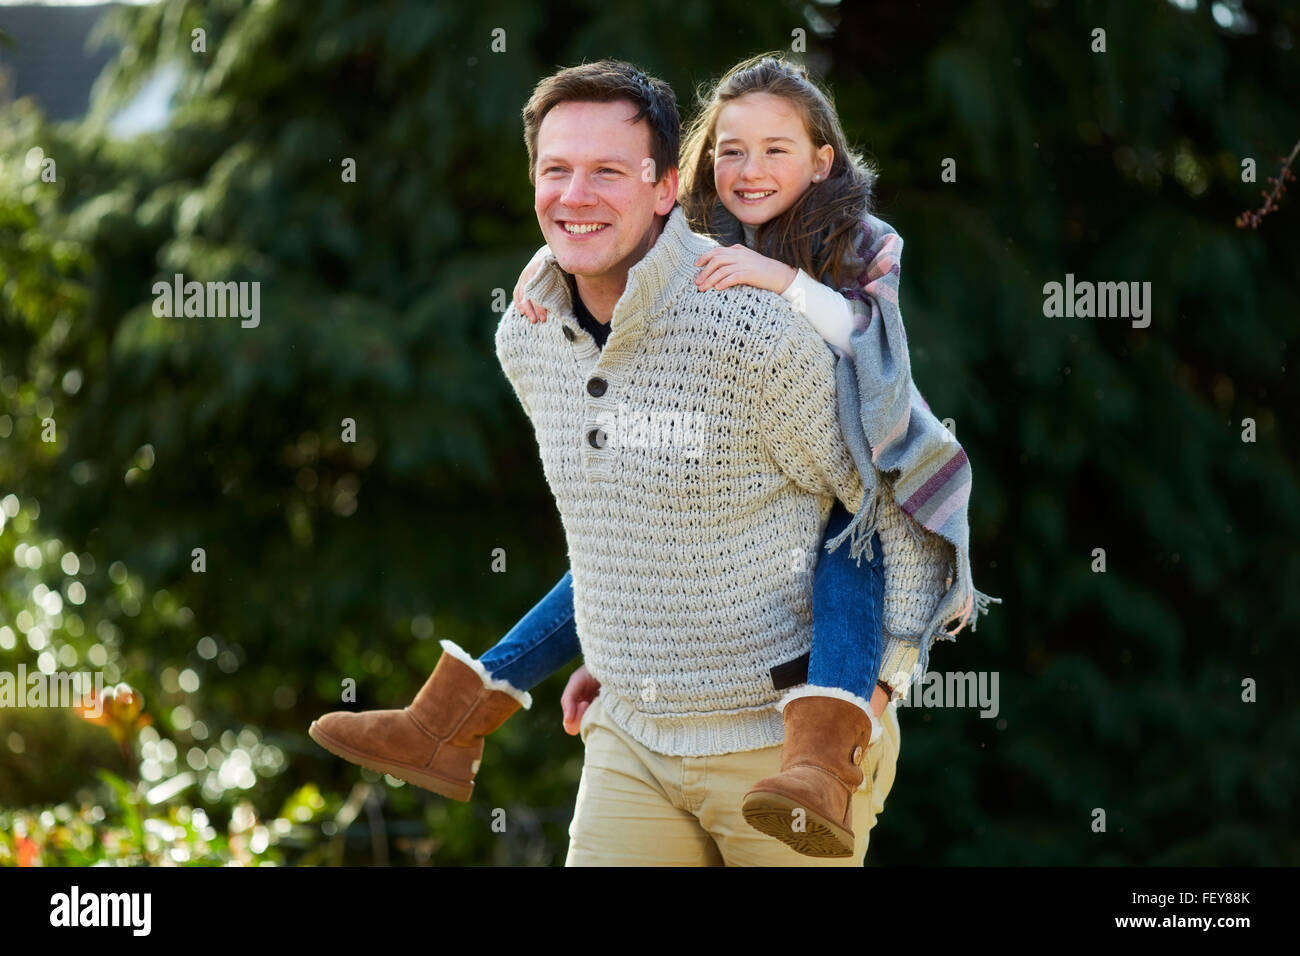 Father giving daughter piggyback Photo Stock